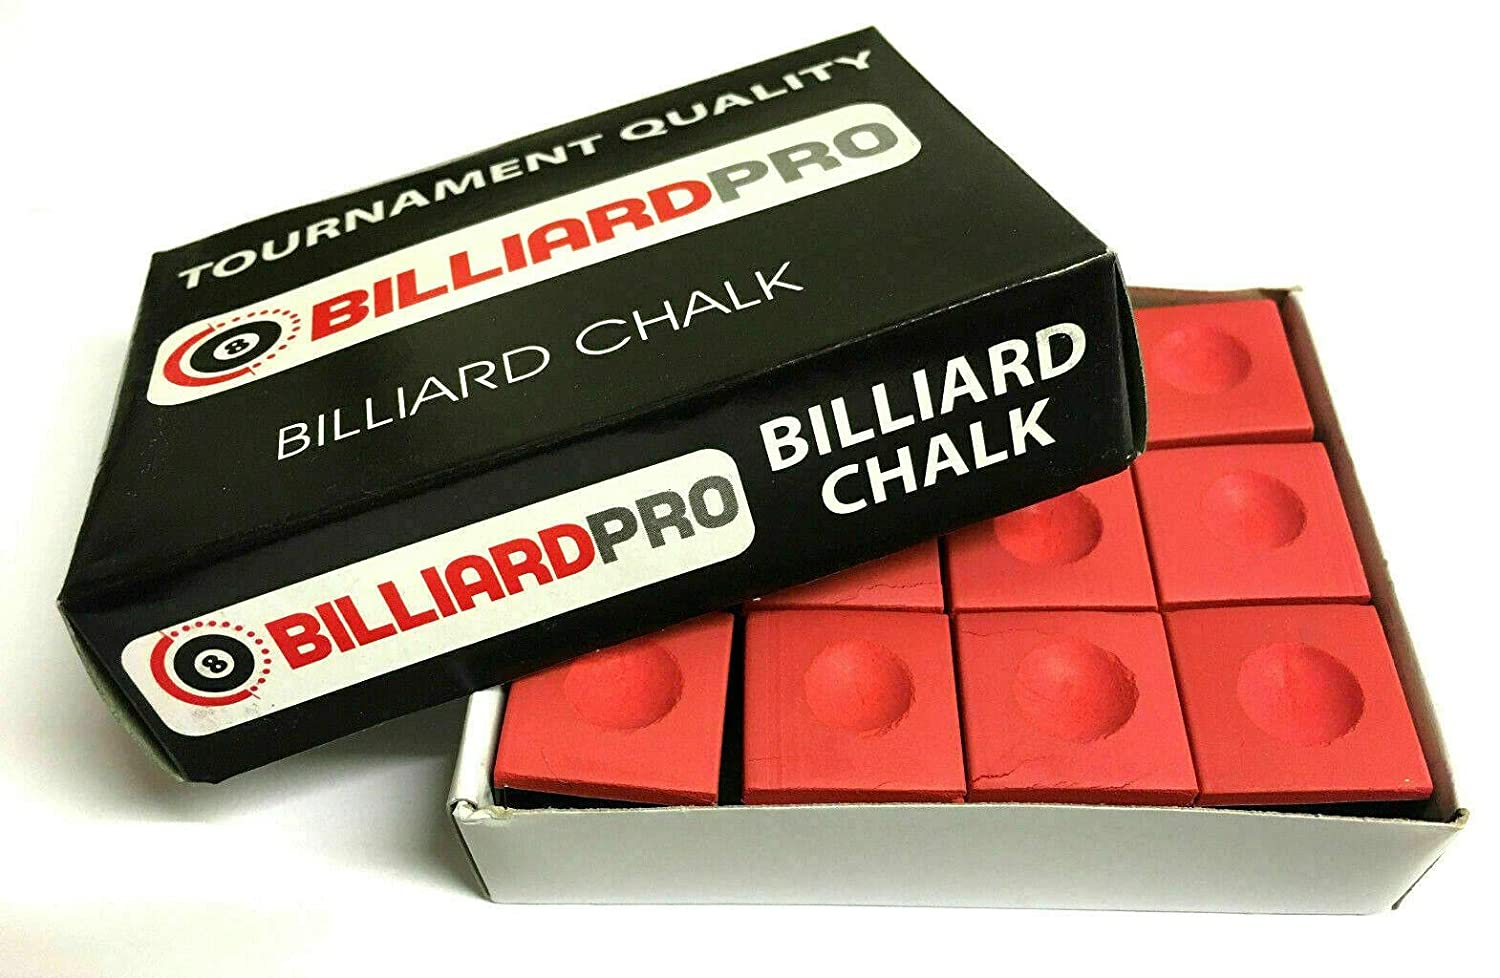 cueball16 12 Pieces BOX of Tournament Quality Snooker or Pool Cue Tips Chalks